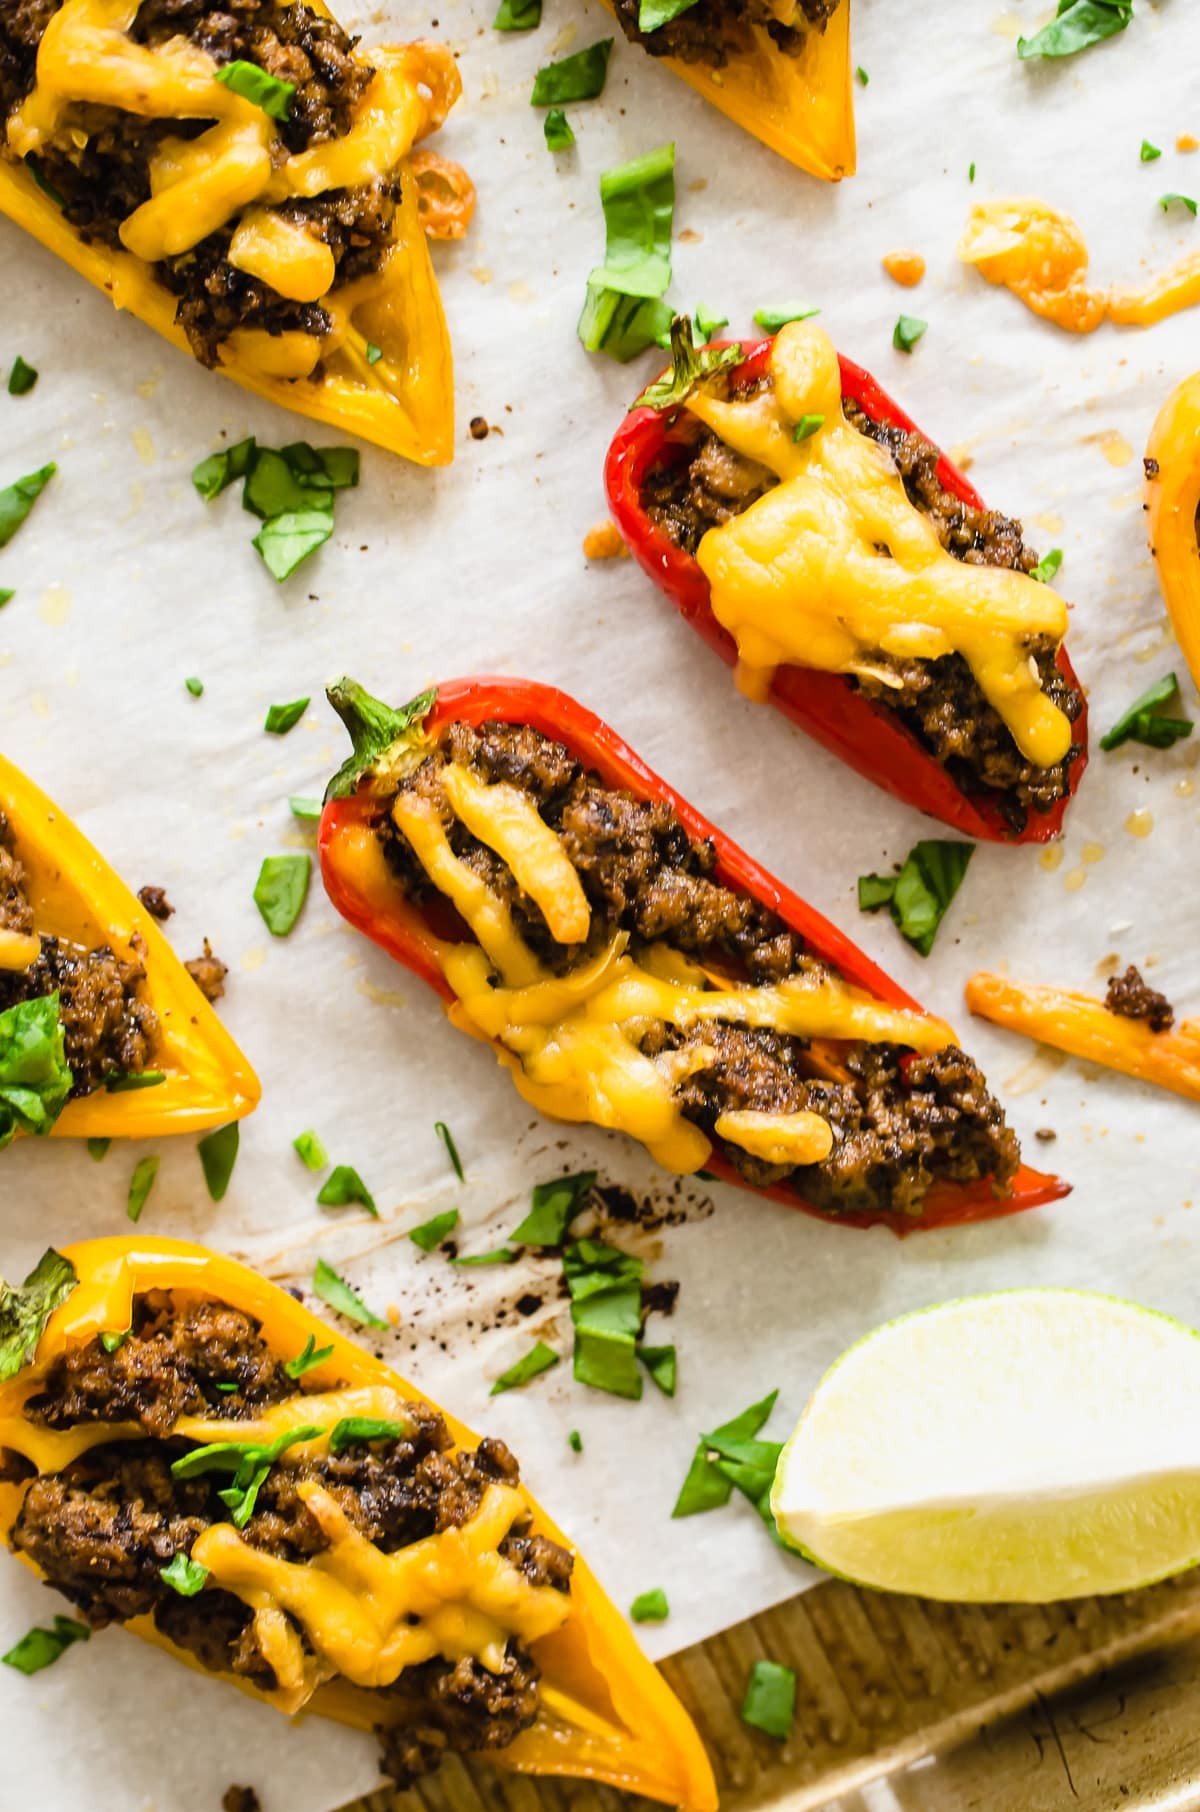 A close up shot of a bell pepper nacho on a parchment lined baking sheet.